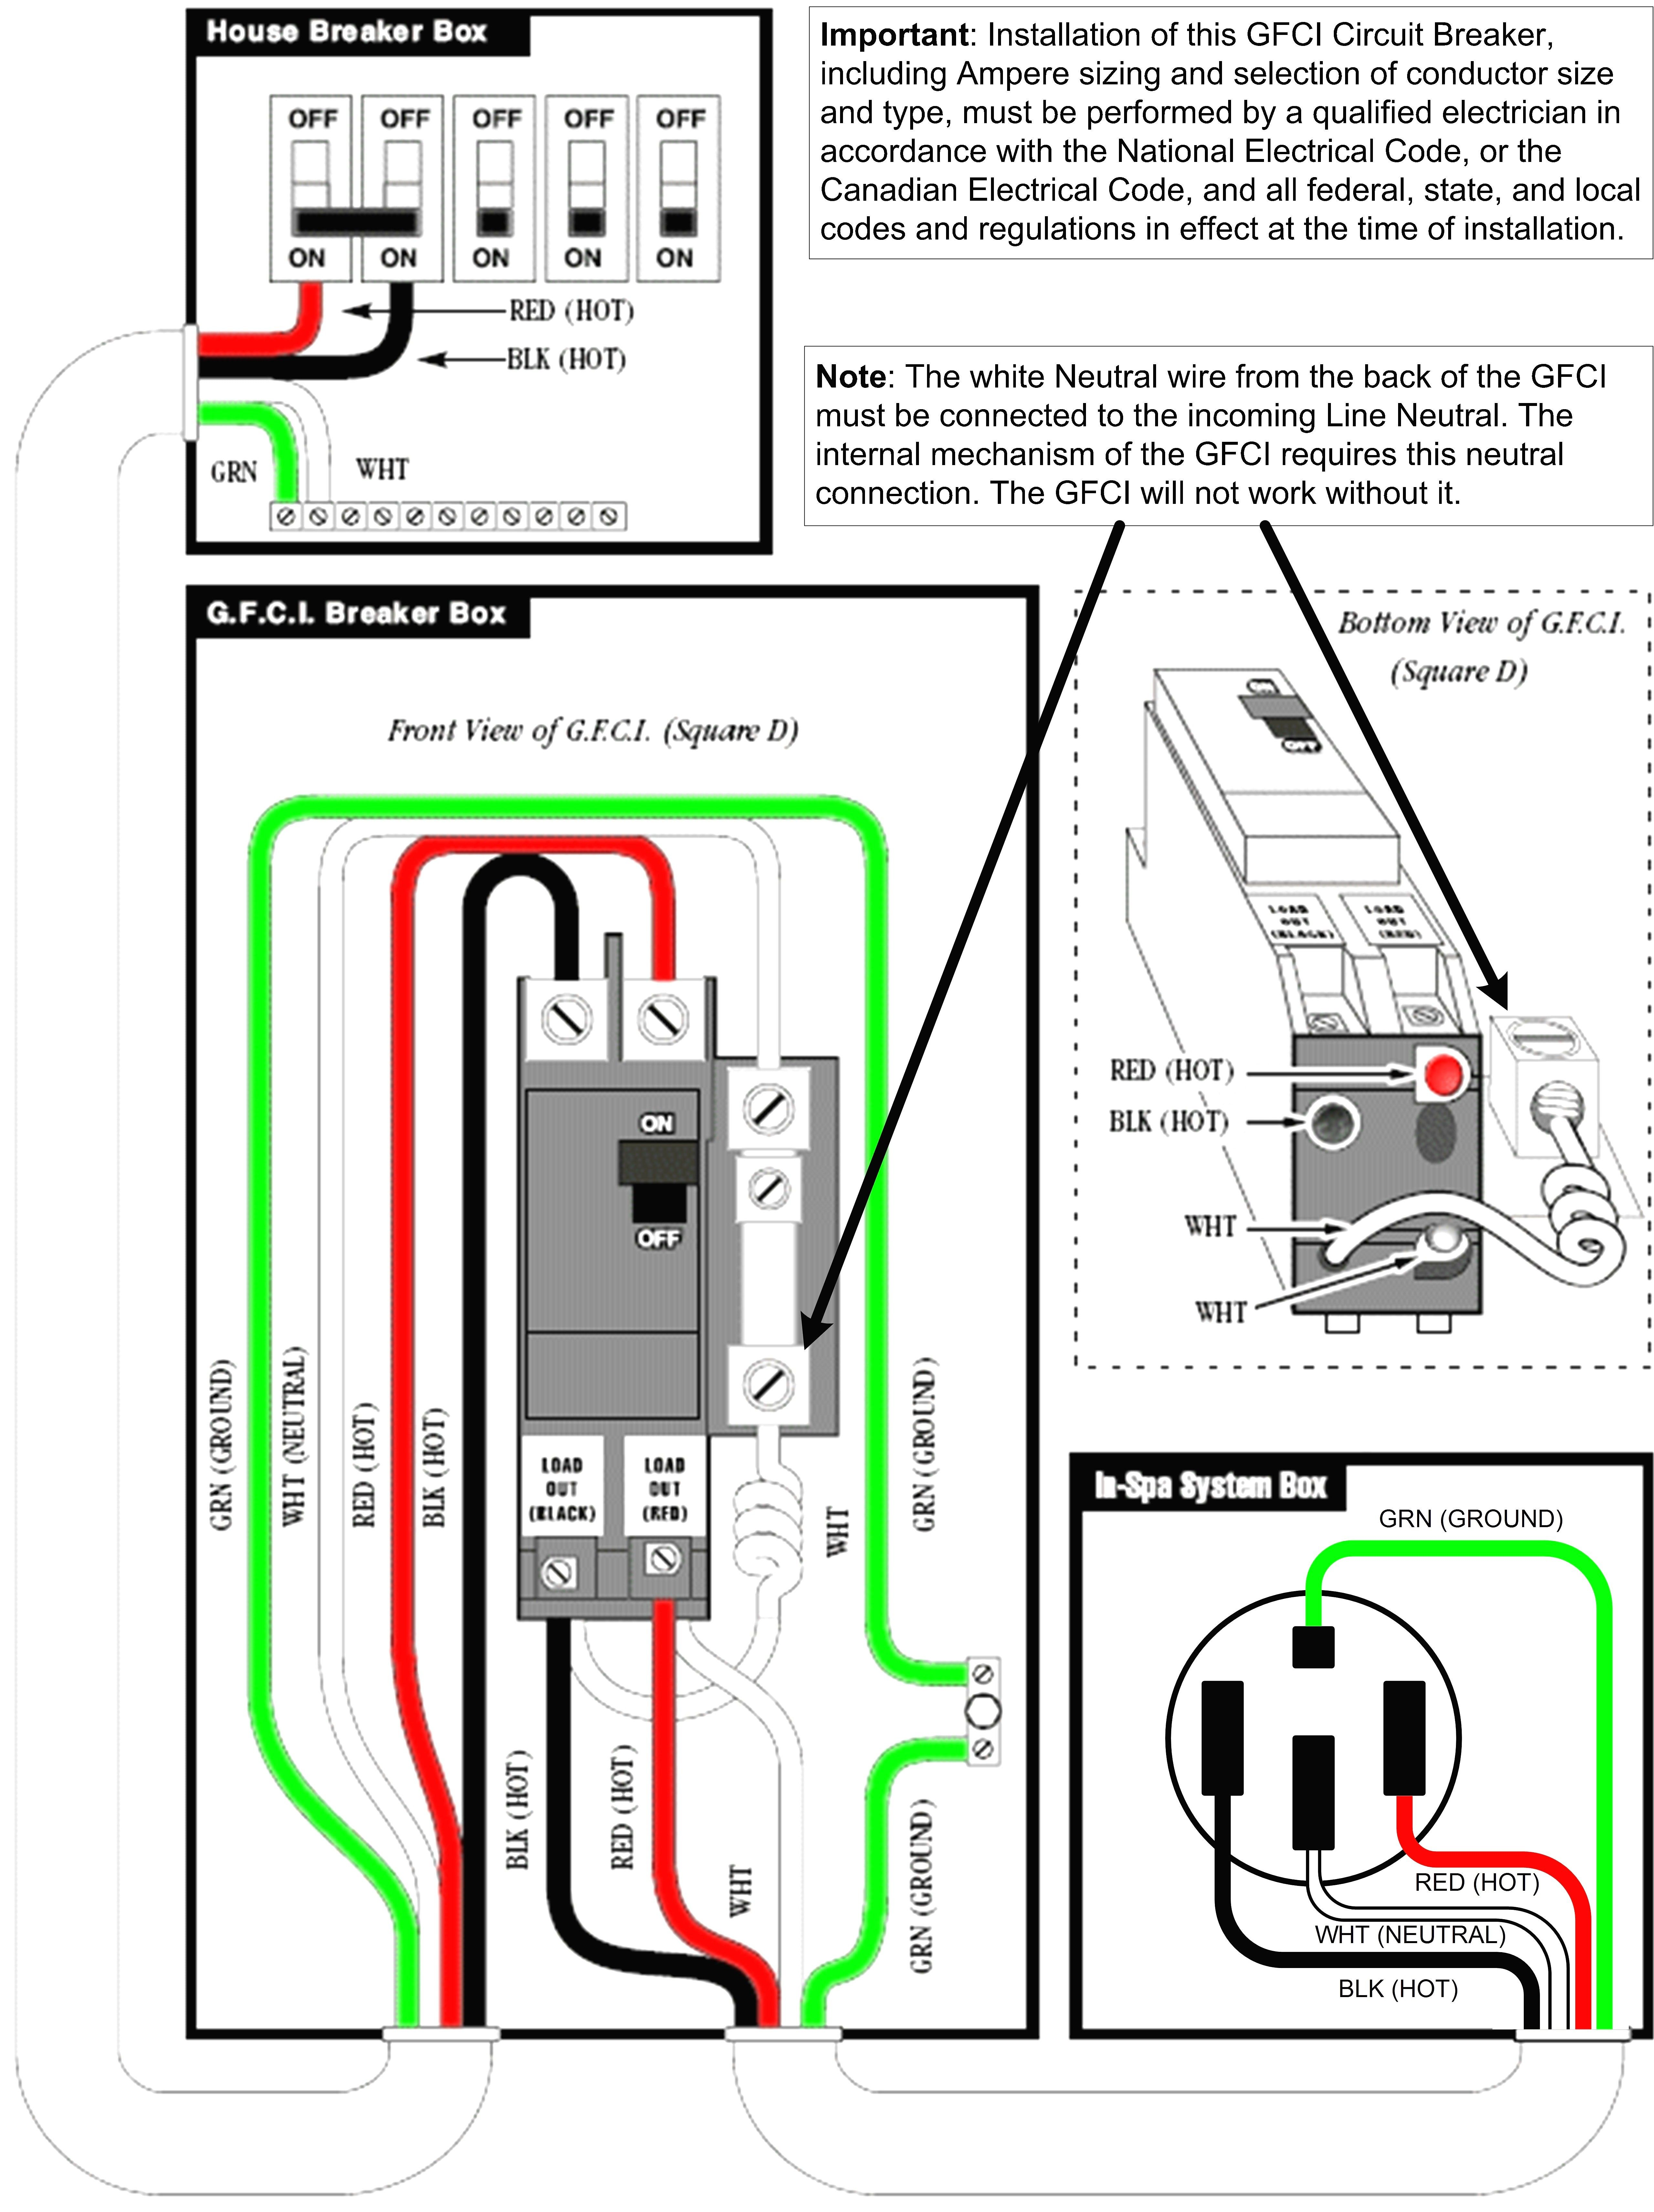 small resolution of new gfci wiring diagram for hot tub diagram diagramsample diagramtemplate wiringdiagram